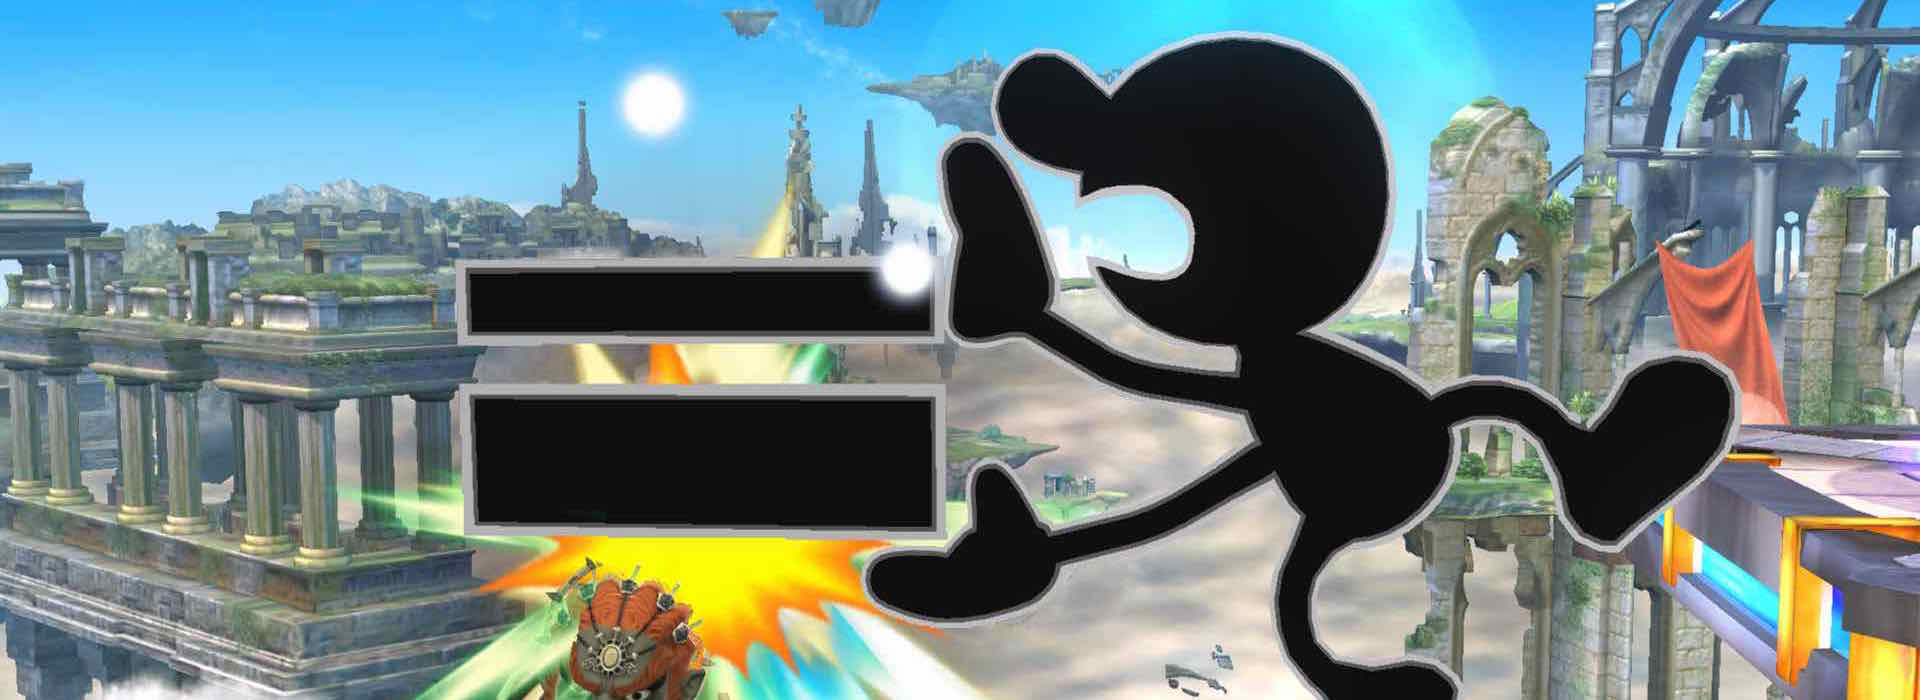 mr-game-and-watch-super-smash-bros-for-wii-u